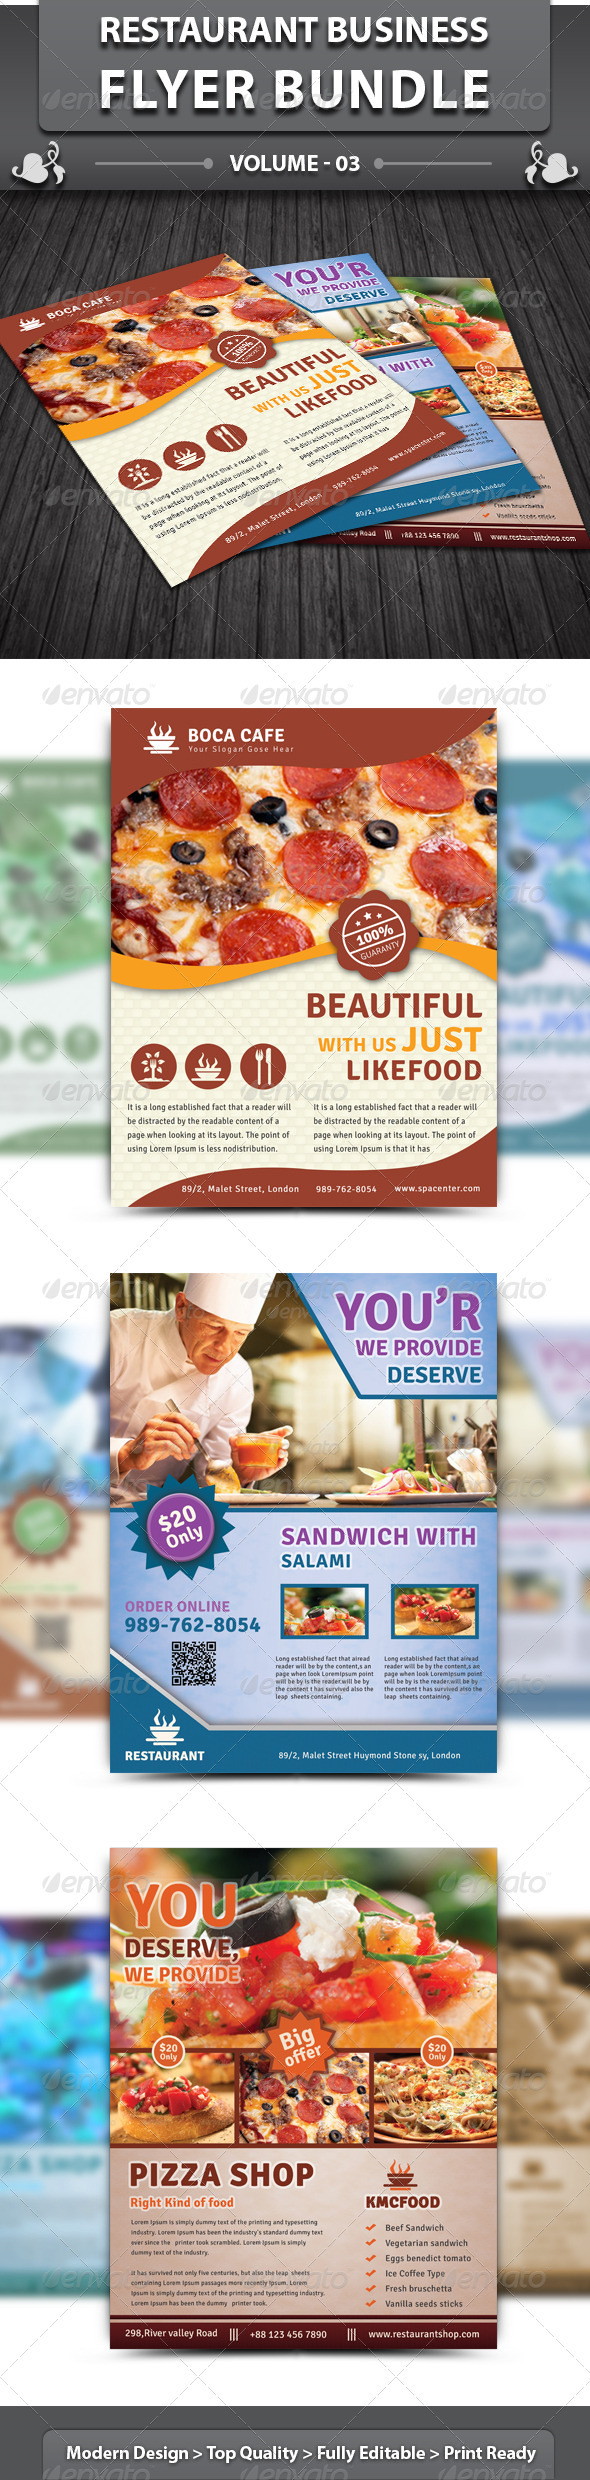 Restaurant Business Flyer Bundle v3 - Restaurant Flyers